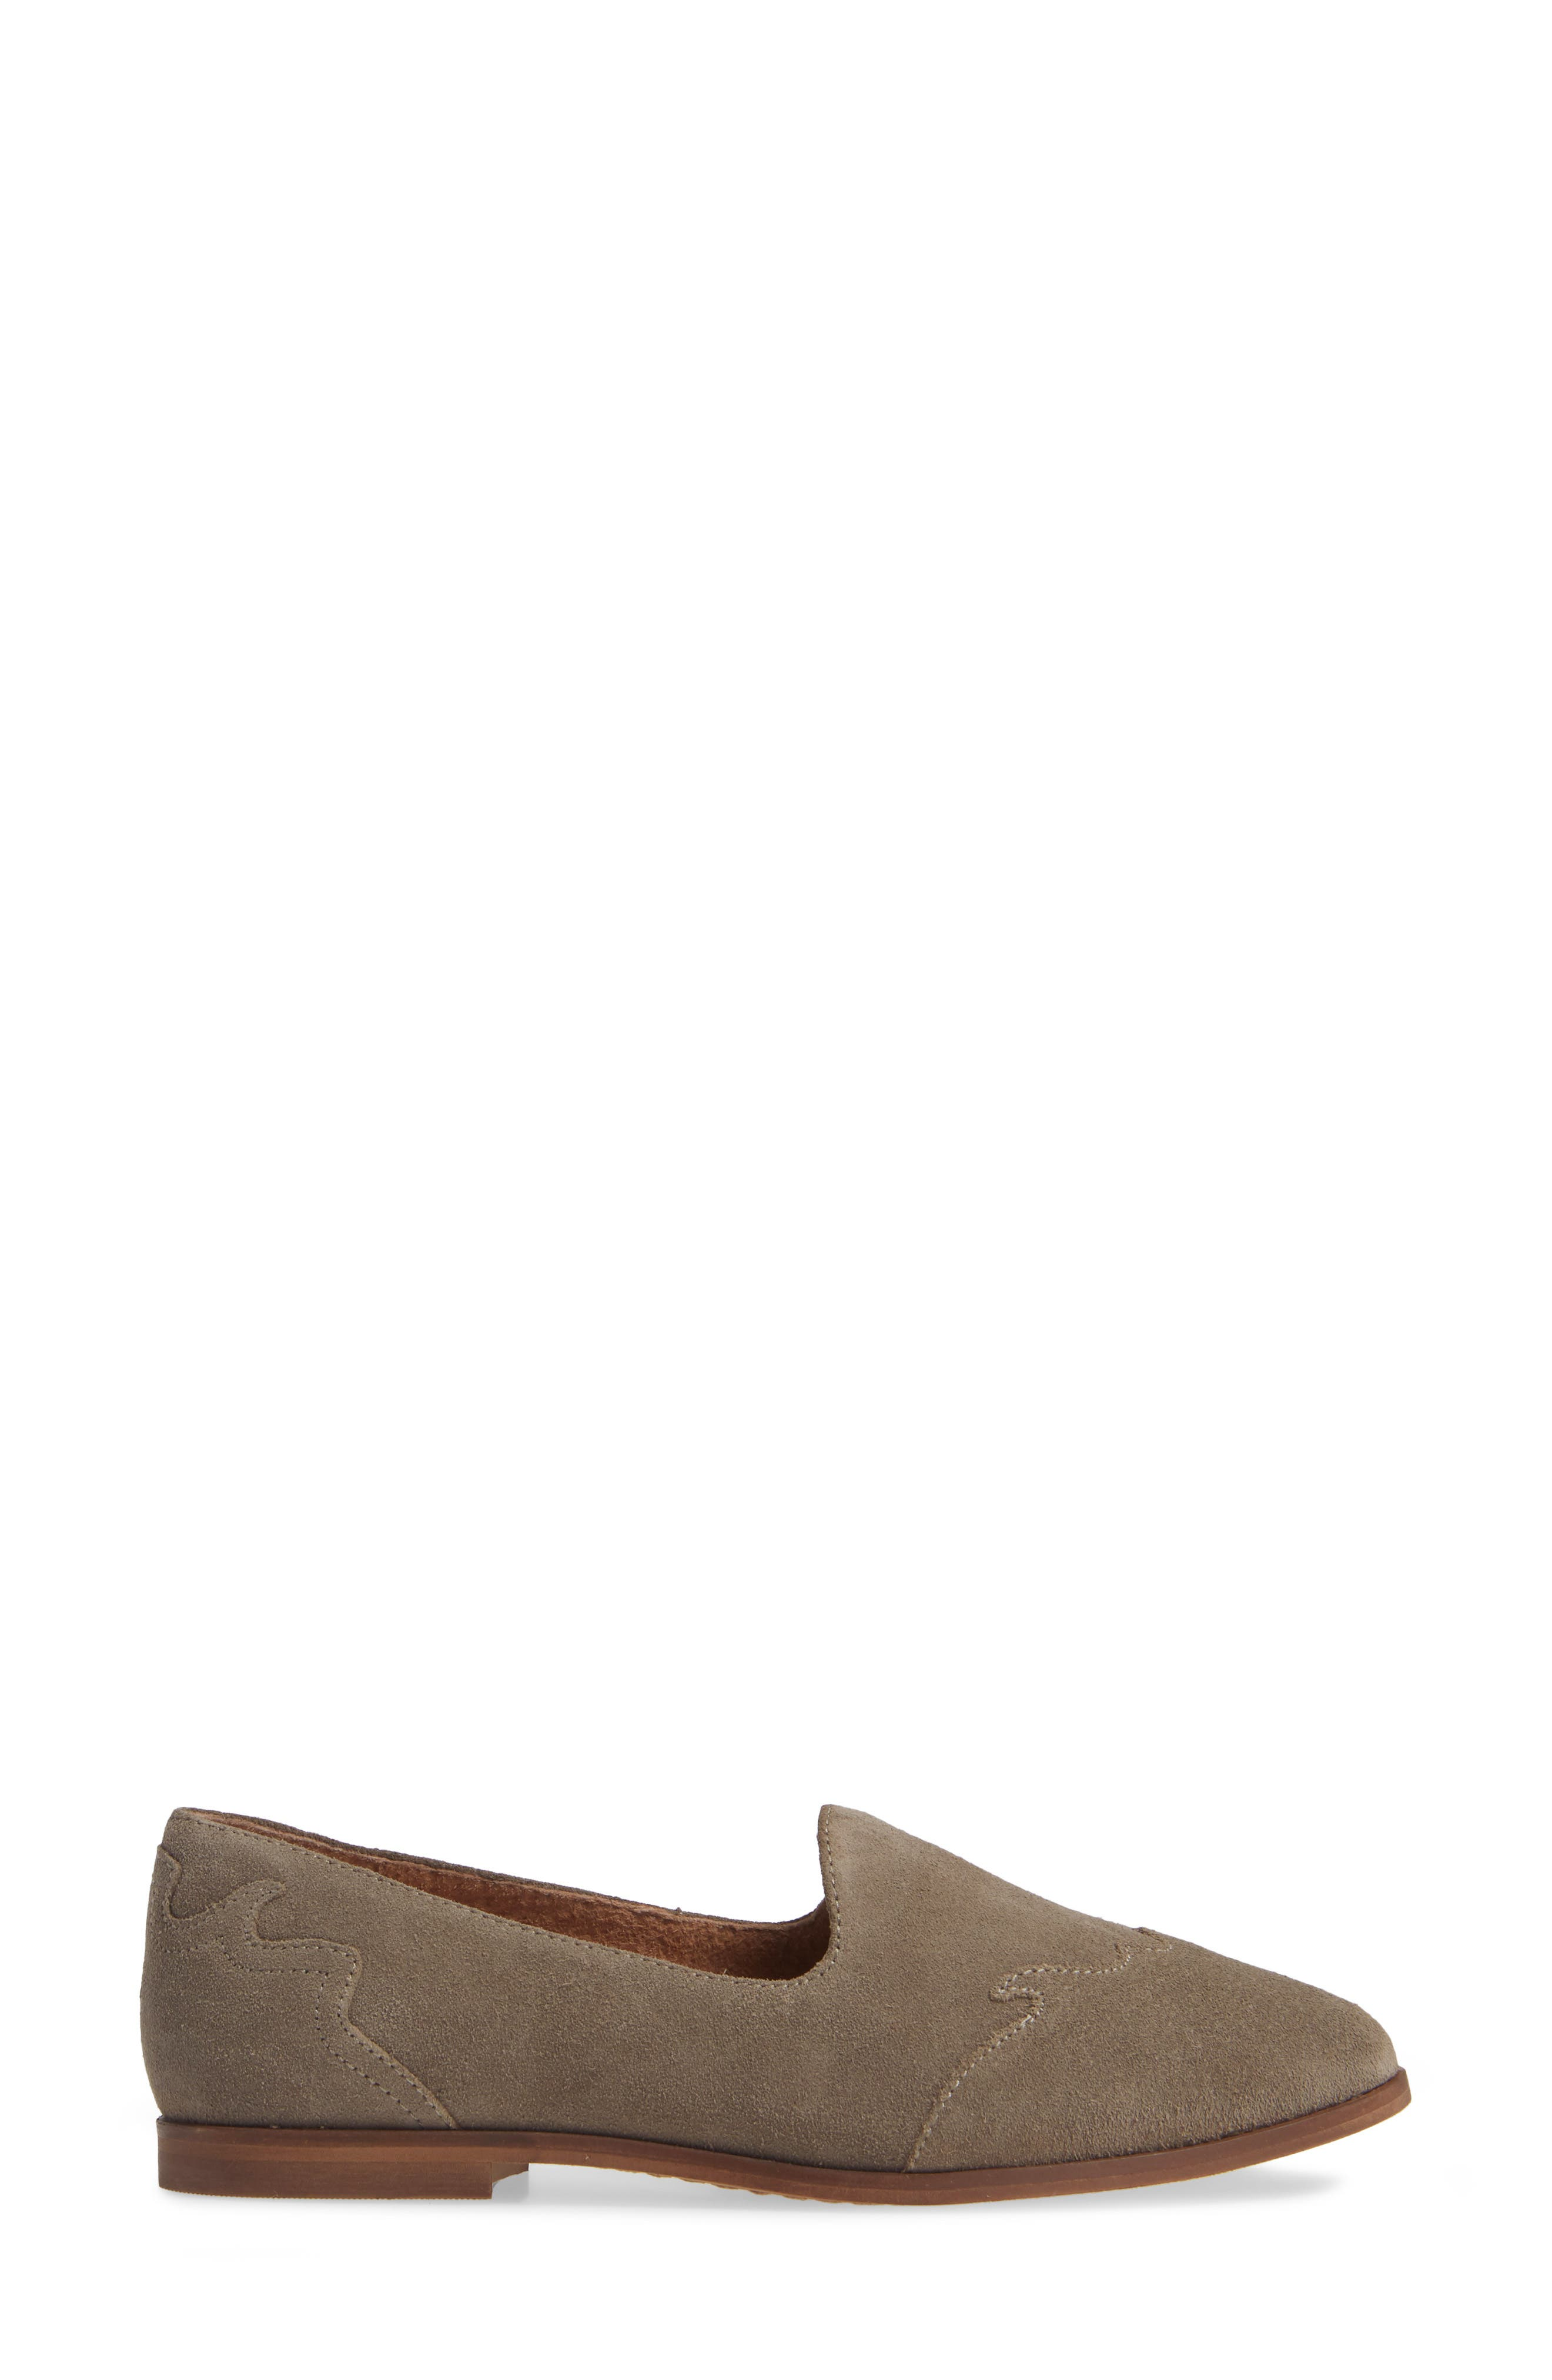 Revolution Loafer,                             Alternate thumbnail 3, color,                             TAUPE SUEDE